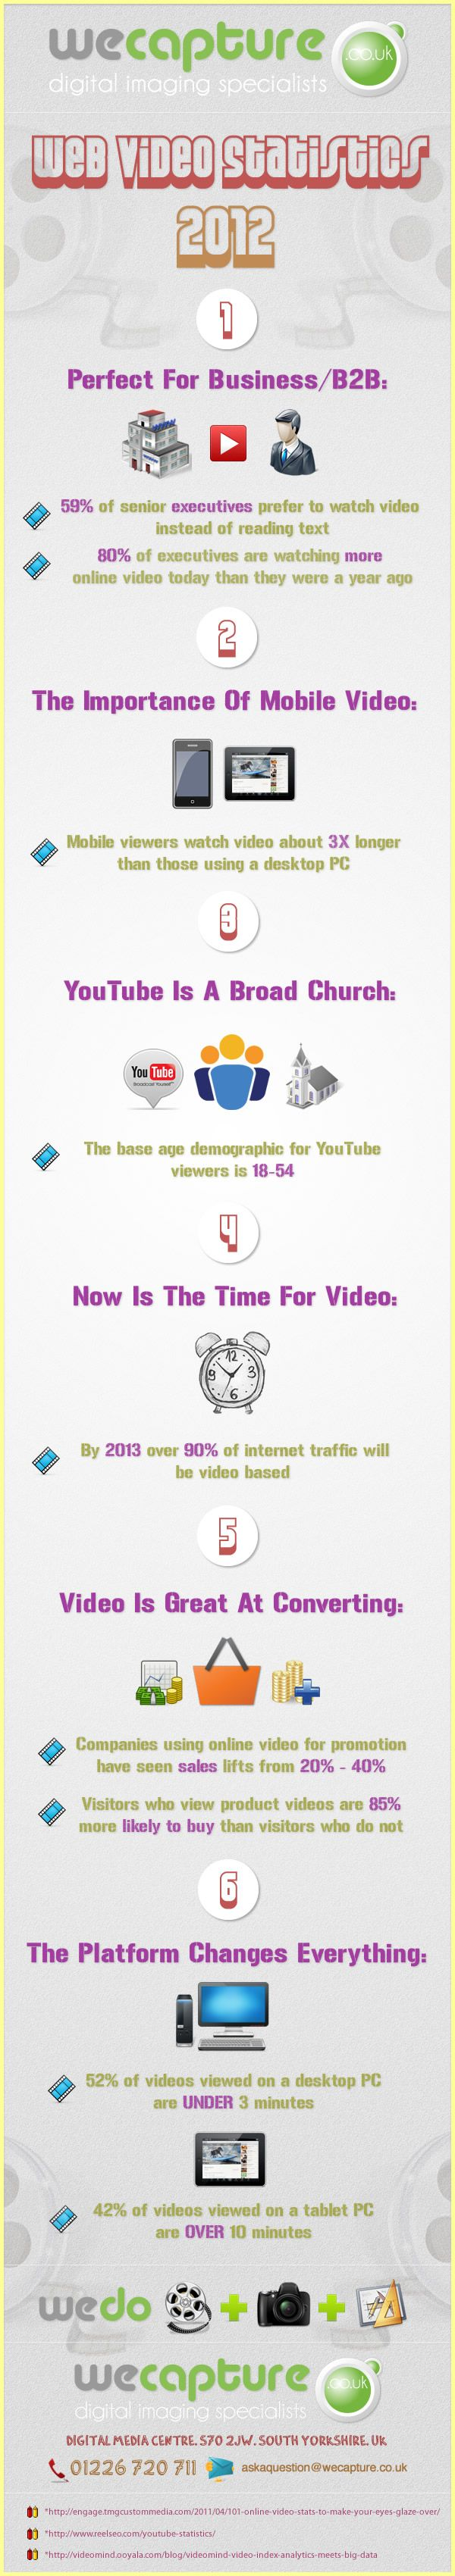 Statistics infographic : #Web #Video #Statistics 2012  Why #Youtube